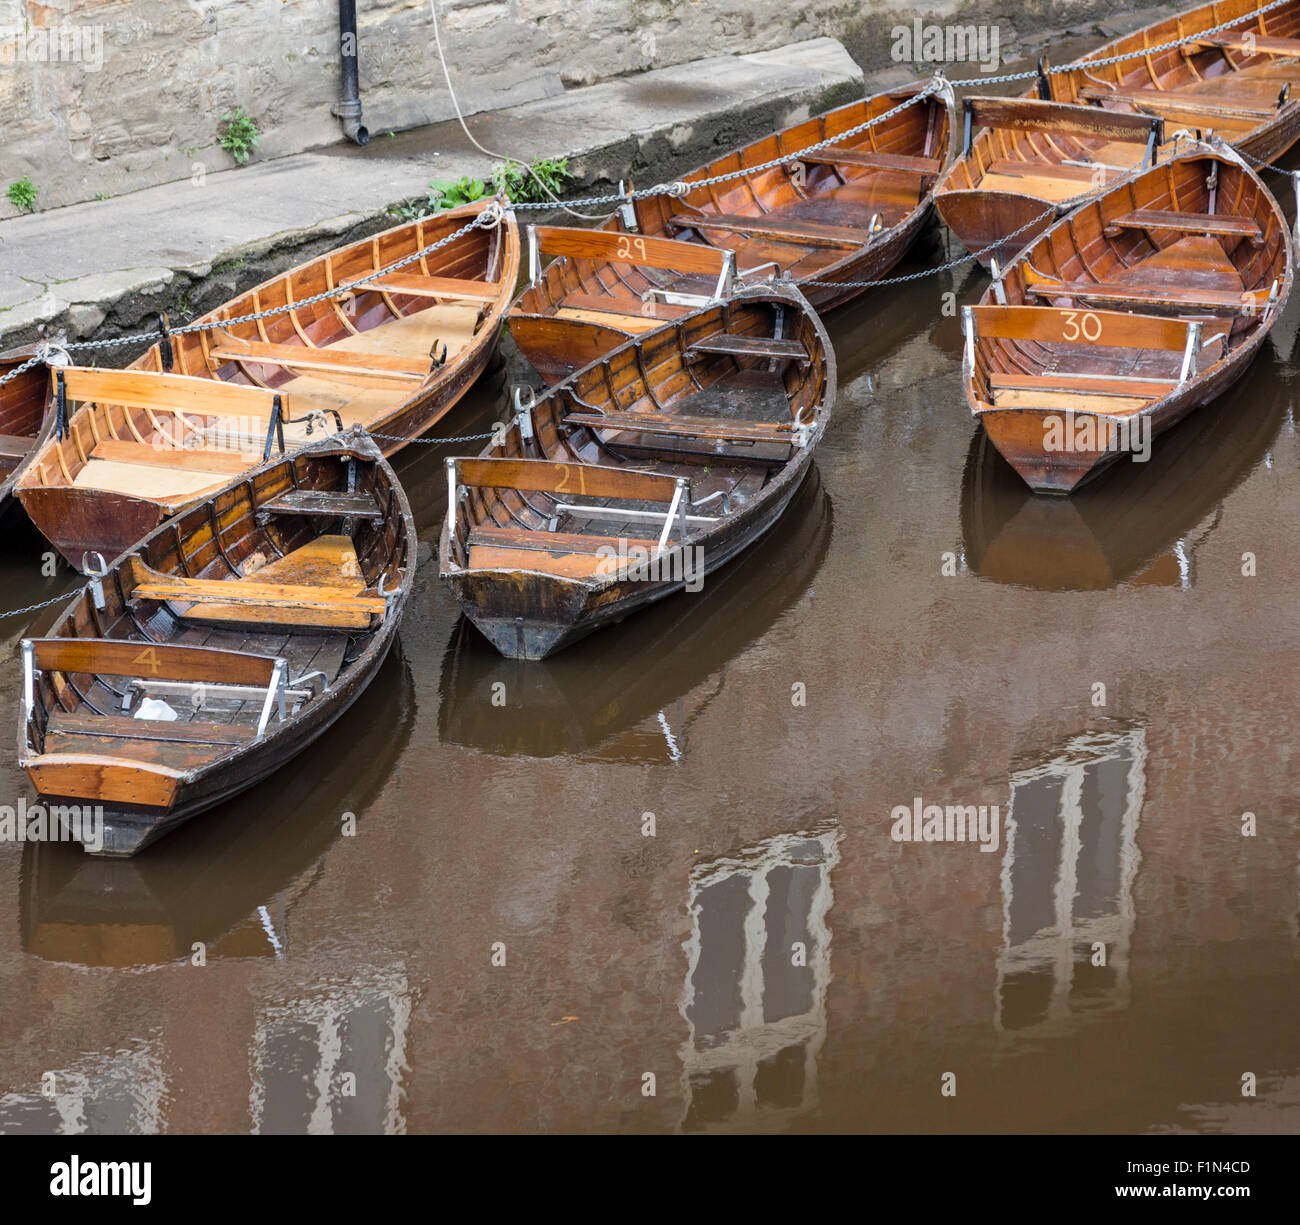 Rowboats for hire in the River Wear, Durham, England, UK. View from Leazes Road bridge with reflected building - Stock Image